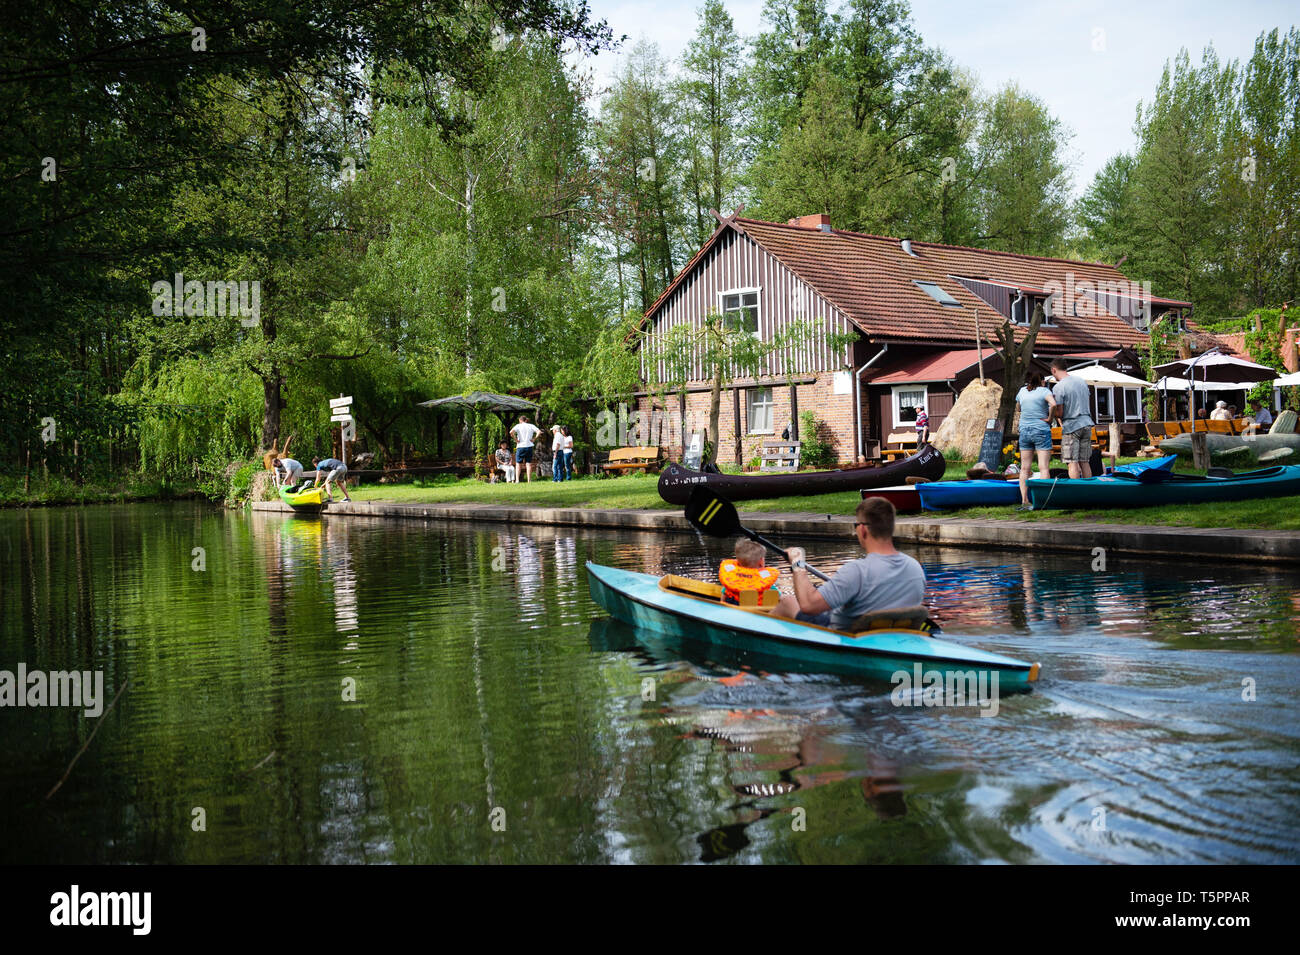 Leipe, Germany. 26th Apr, 2019. Tourists pass the Spreewaldhof inn in a canoe on the main river Spree. (to dpa 'Lusatia: Successful season opener with many tourists') Credit: Lisa Ducret/dpa/Alamy Live News - Stock Image